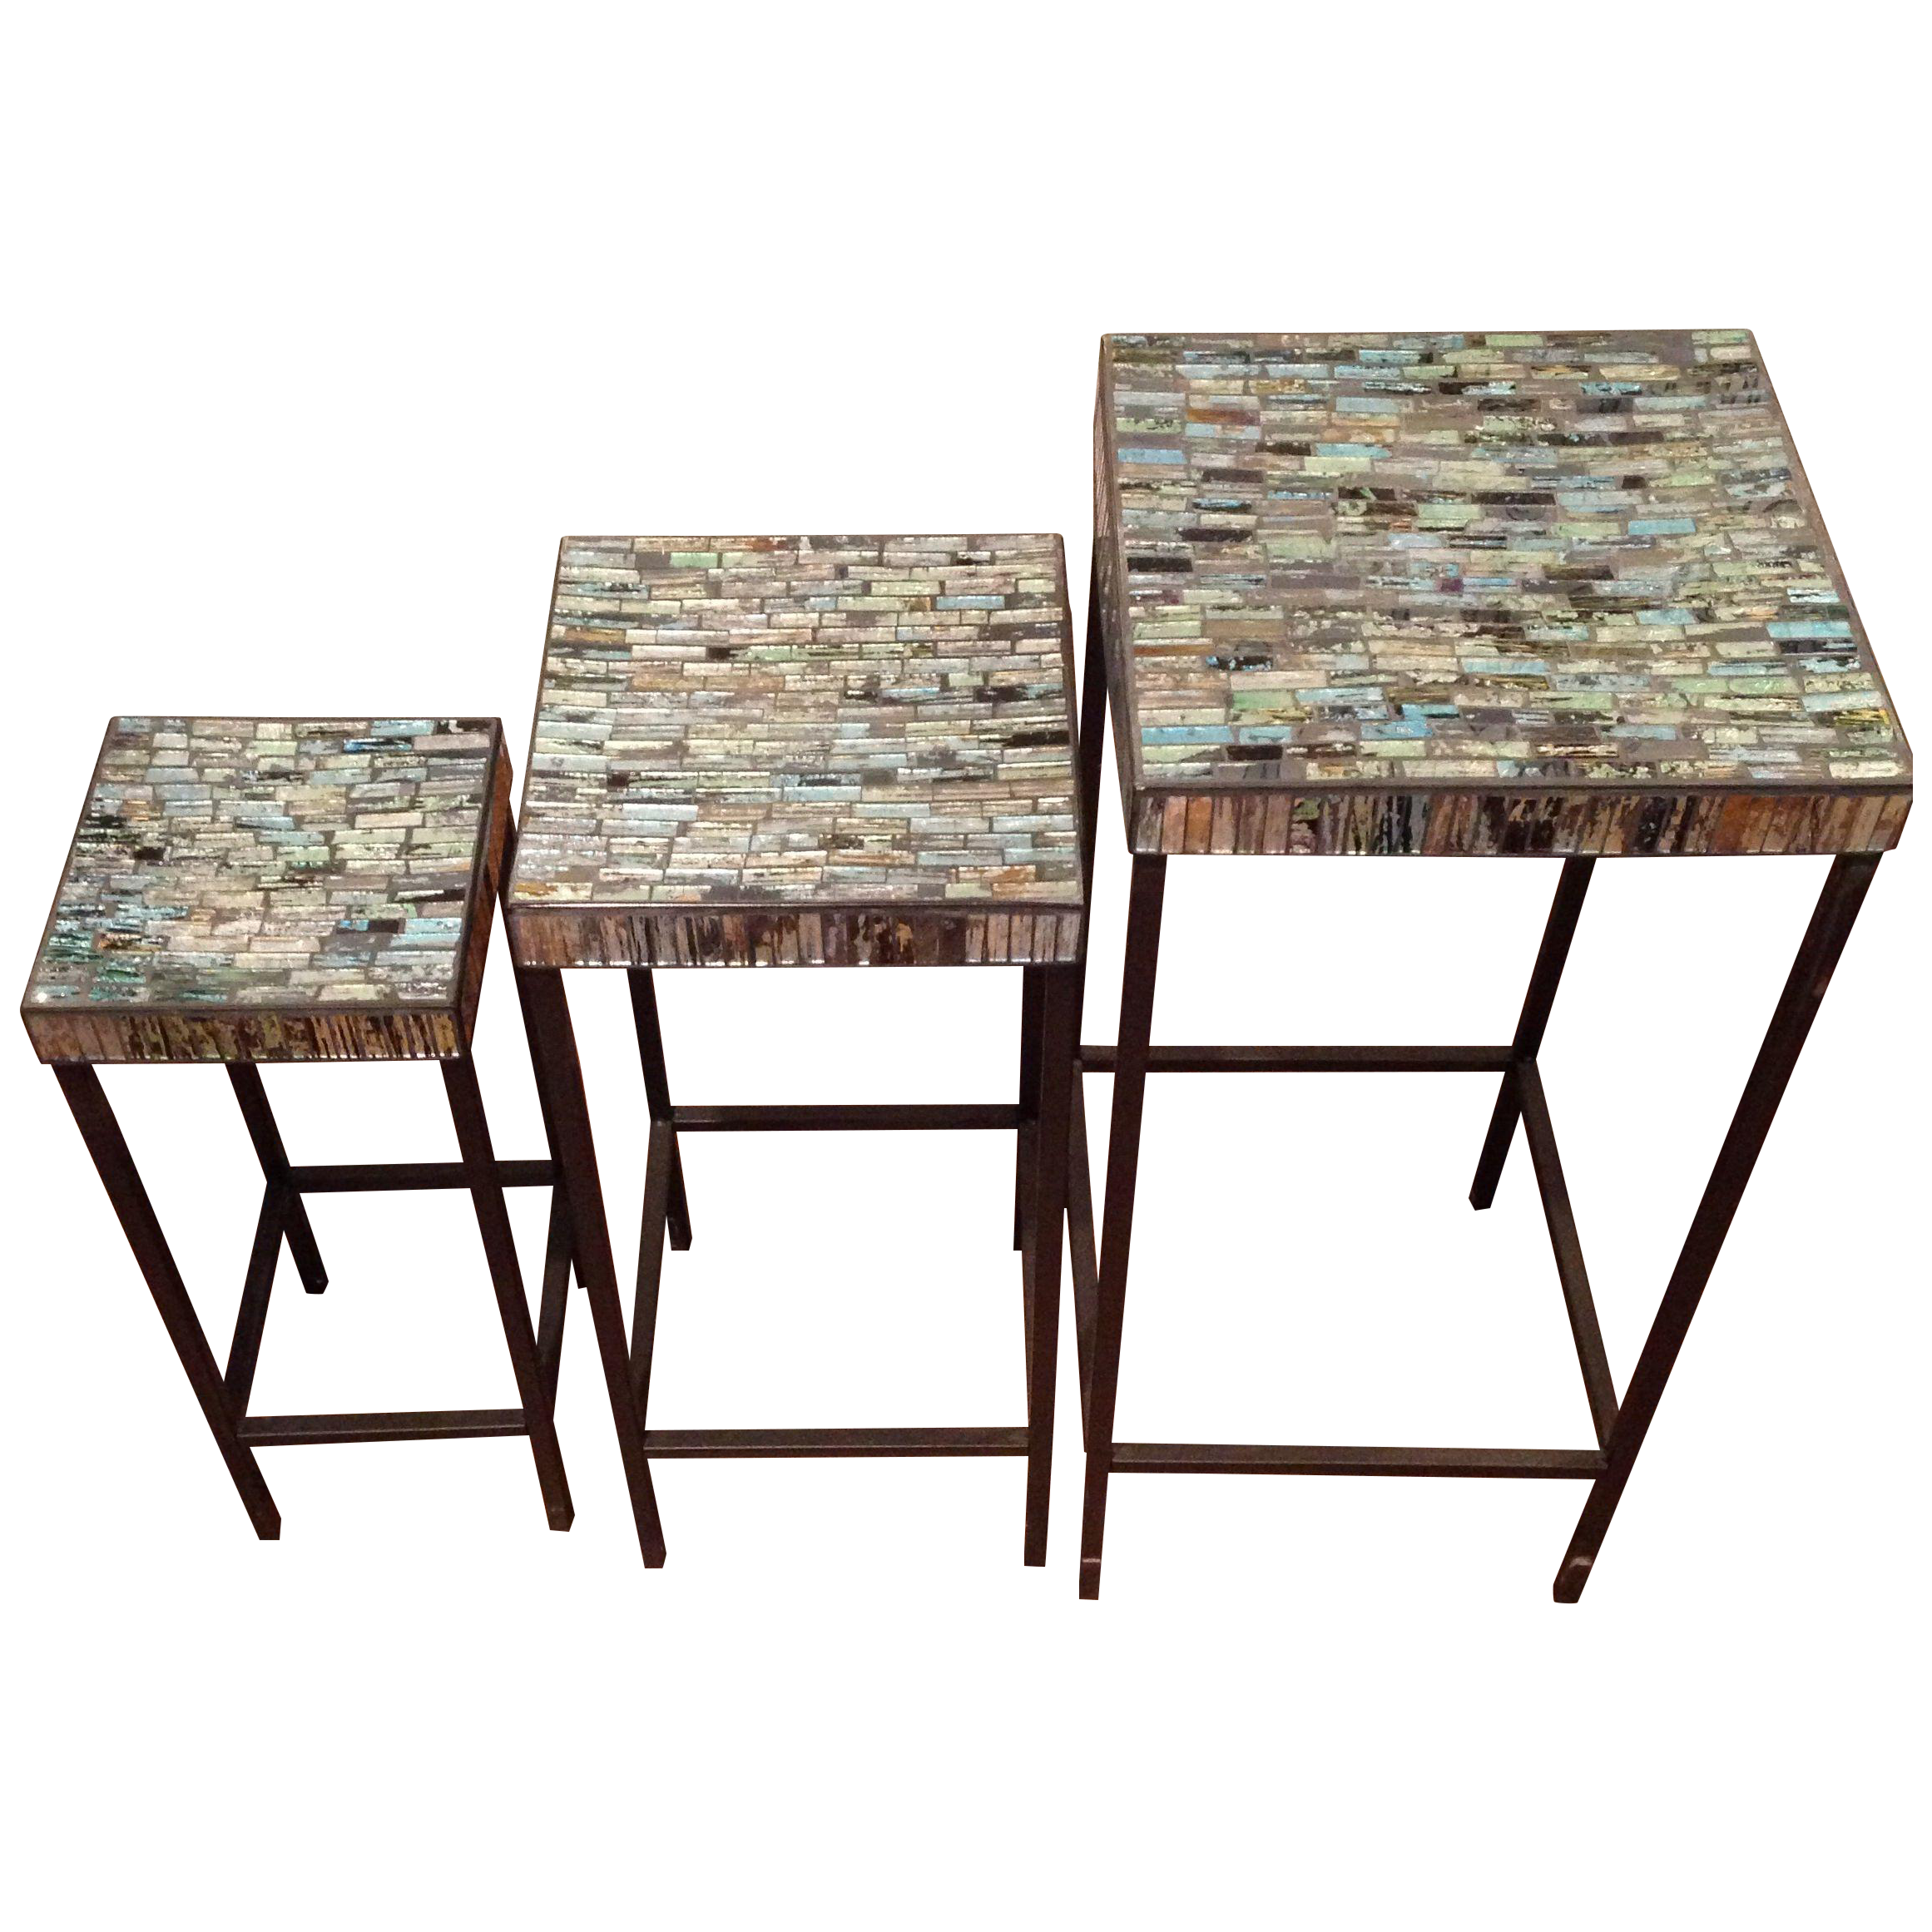 Blue Glass Mosaic Nesting Tables Set Of 3 Chairish. Full resolution  image, nominally Width 2322 Height 2322 pixels, image with #2E1A16.